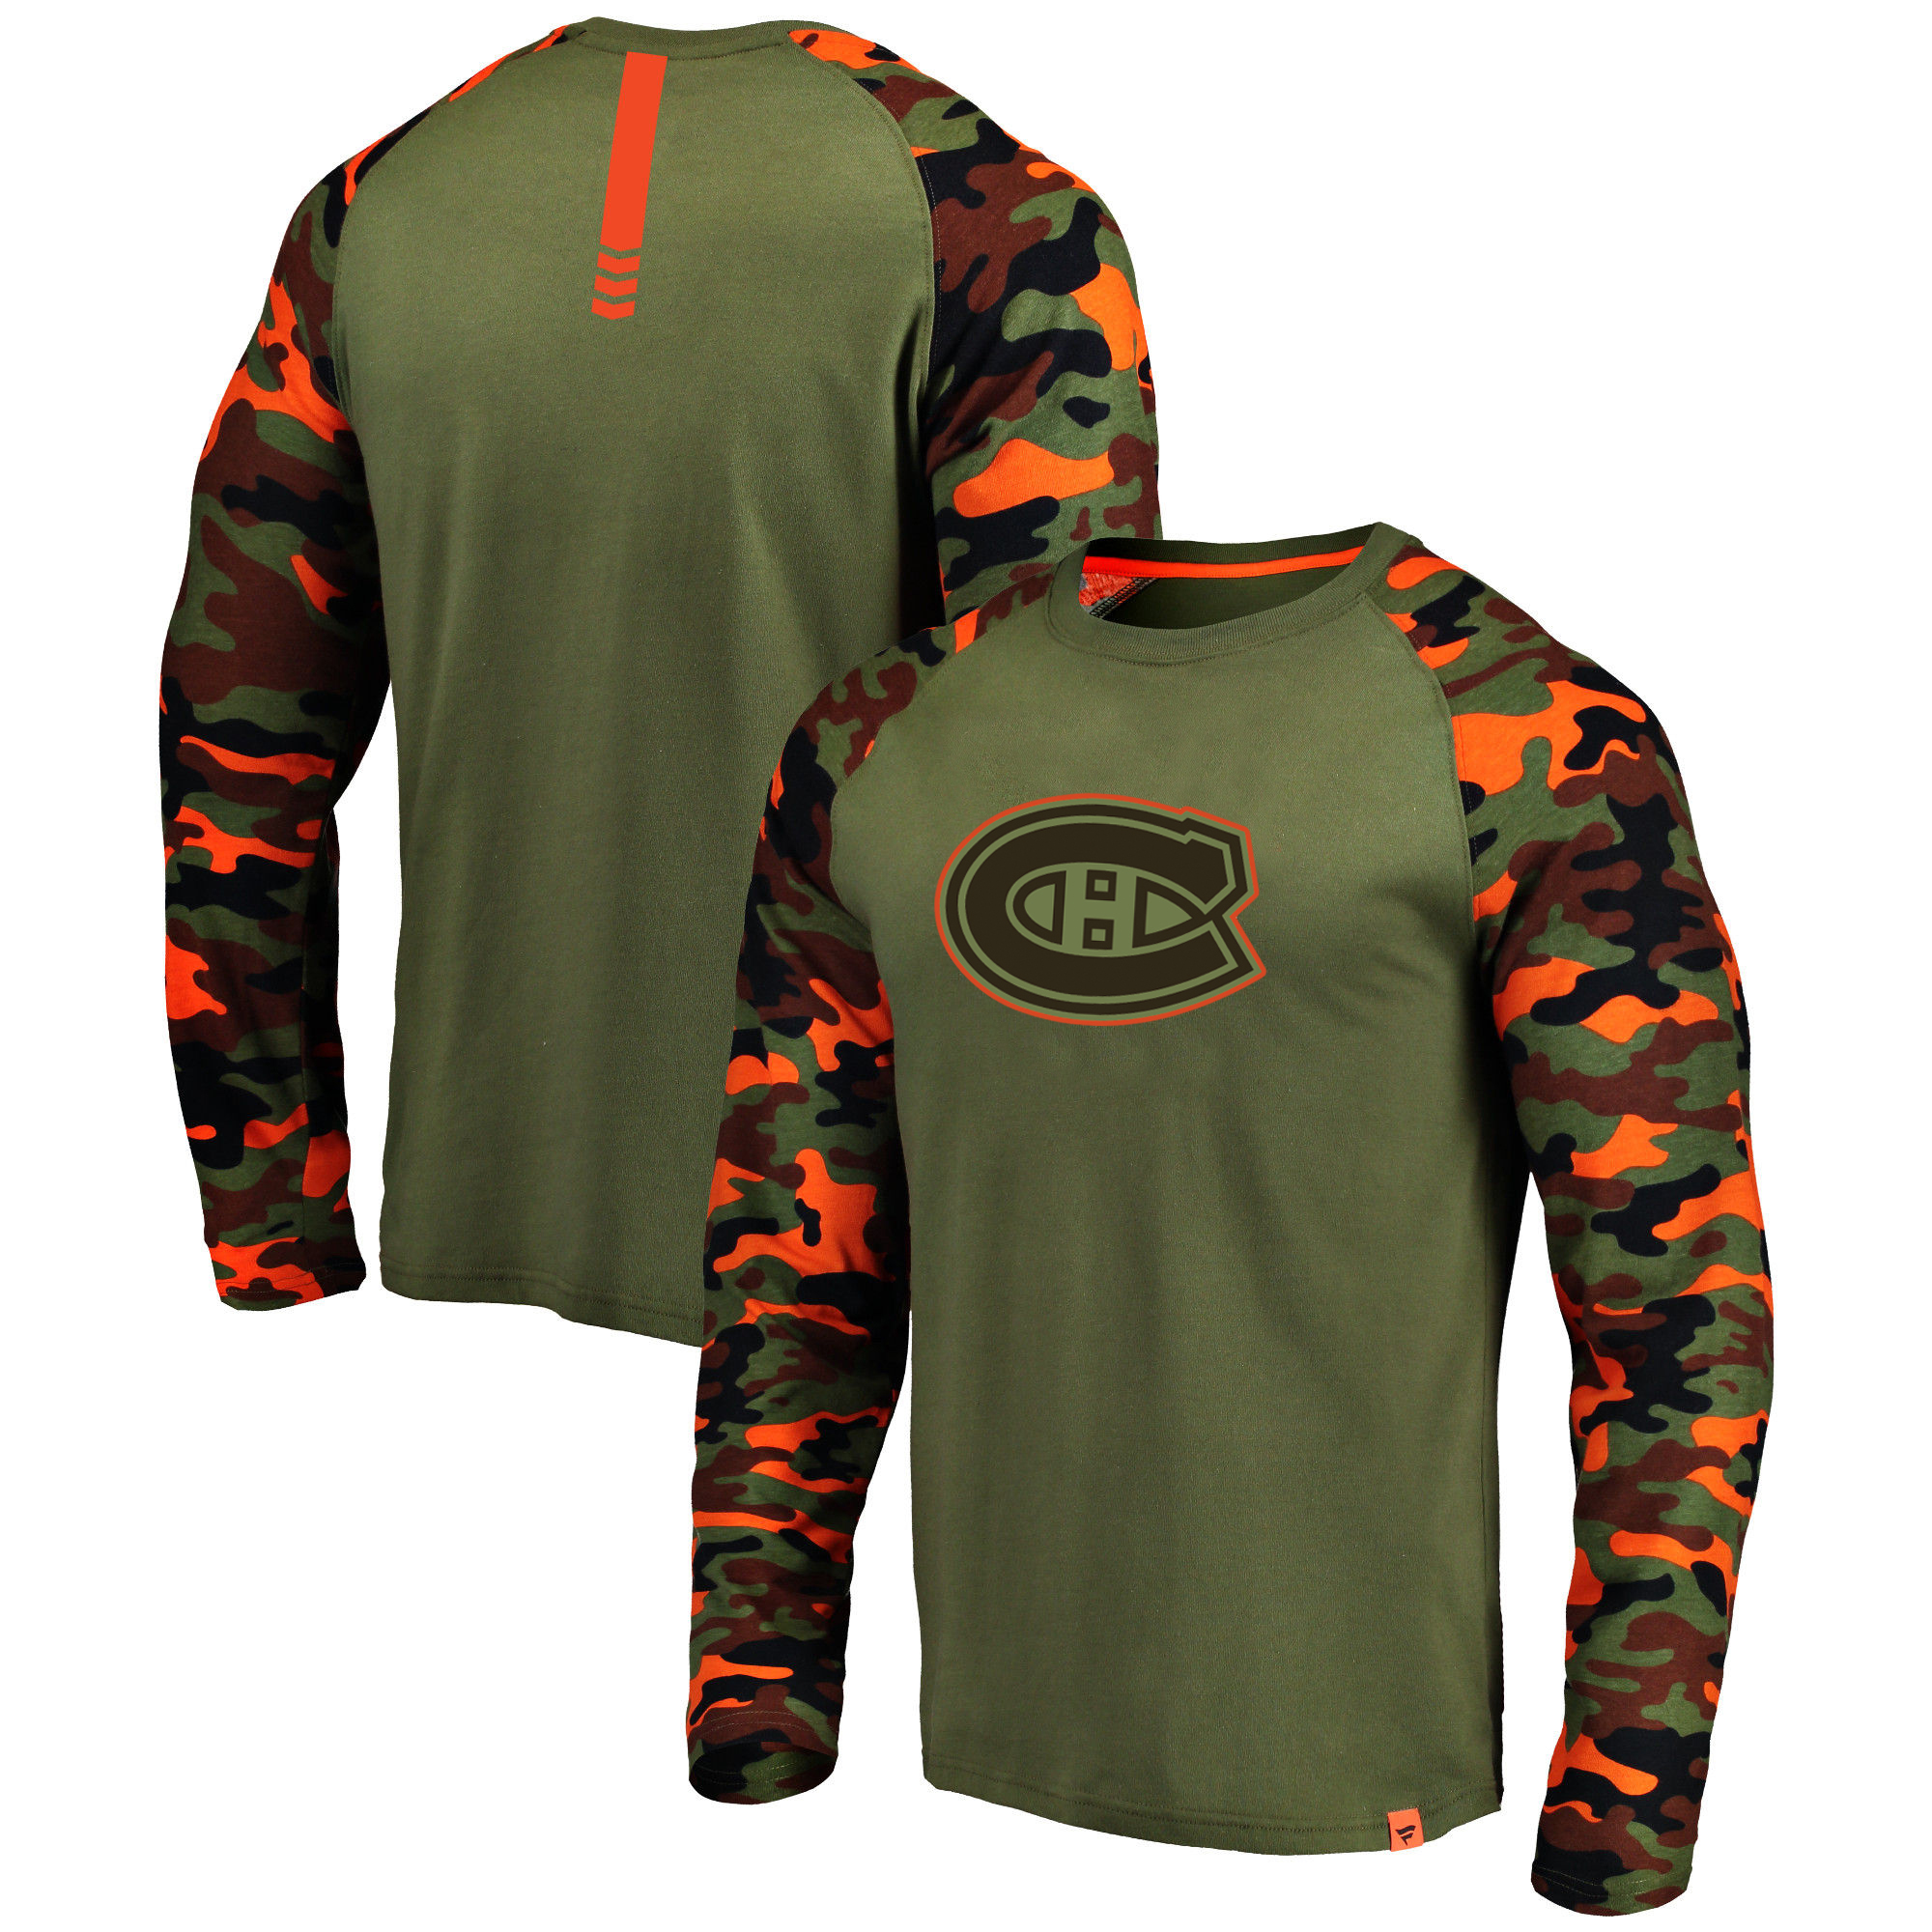 Montreal Canadiens Fanatics Branded Olive/Camo Recon Long Sleeve Raglan T-Shirt